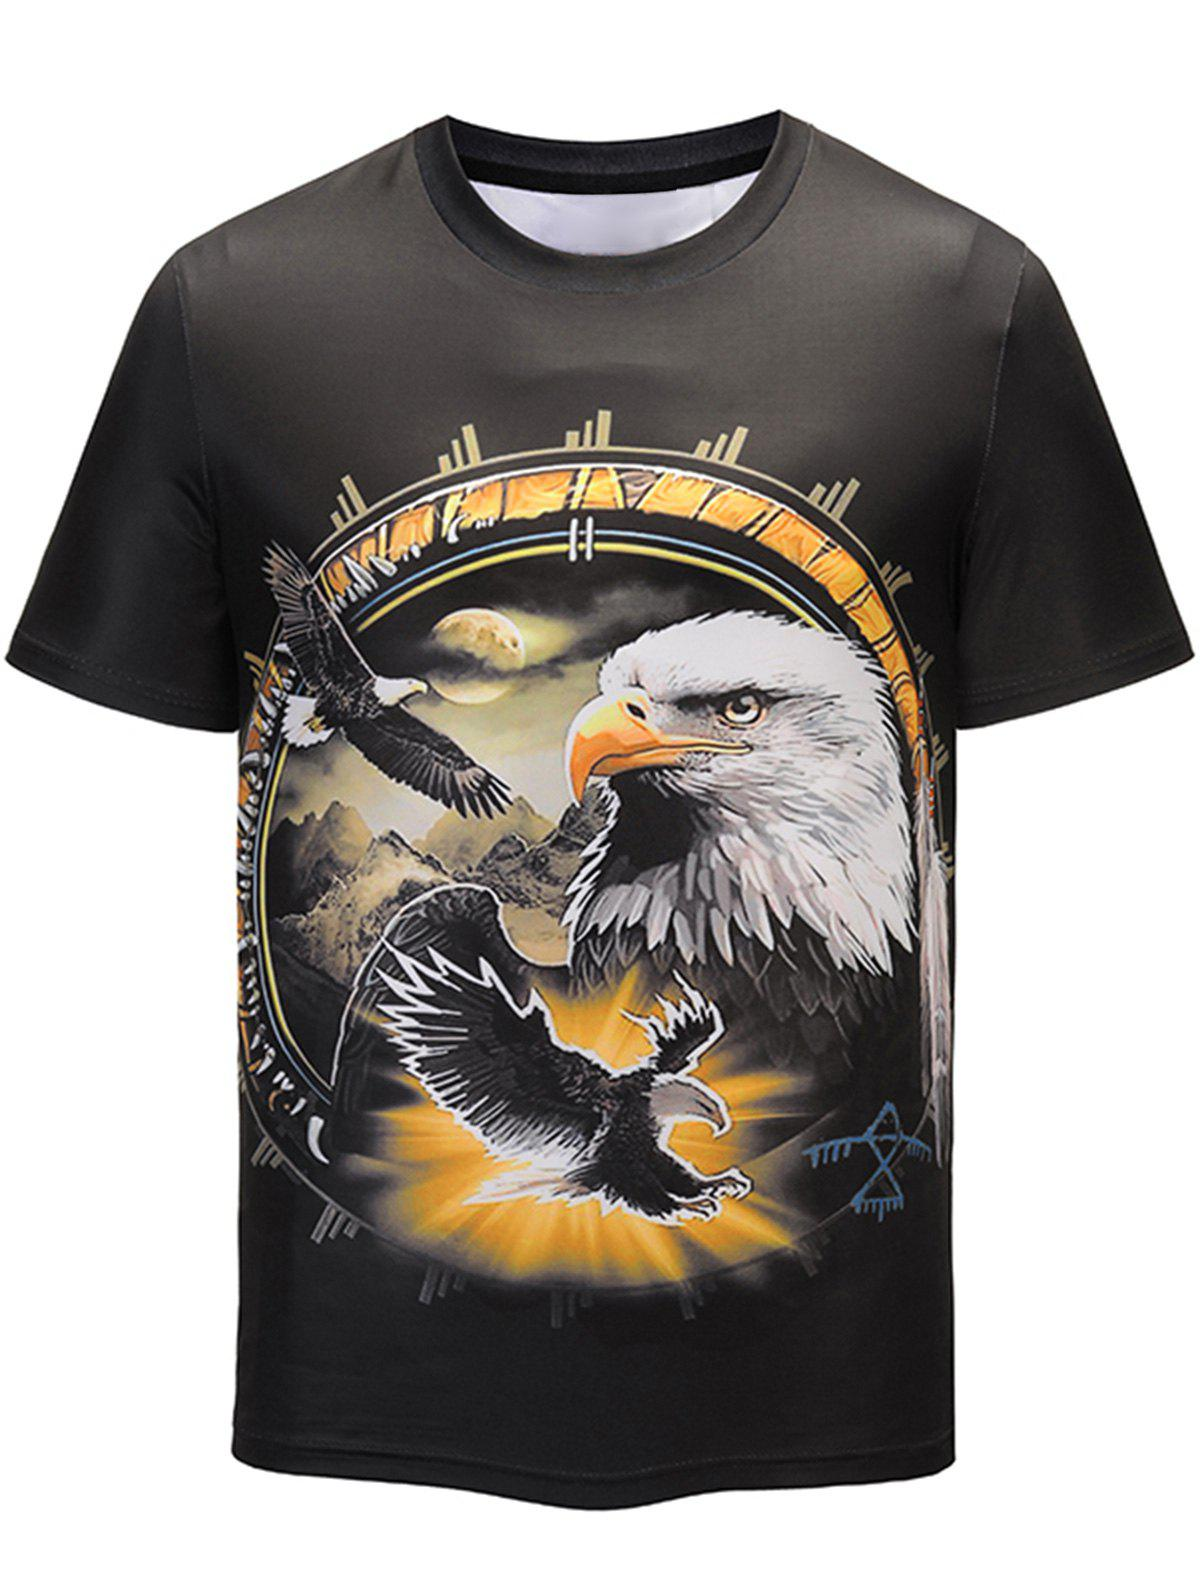 3D Eagle Print Crew Neck T-shirt